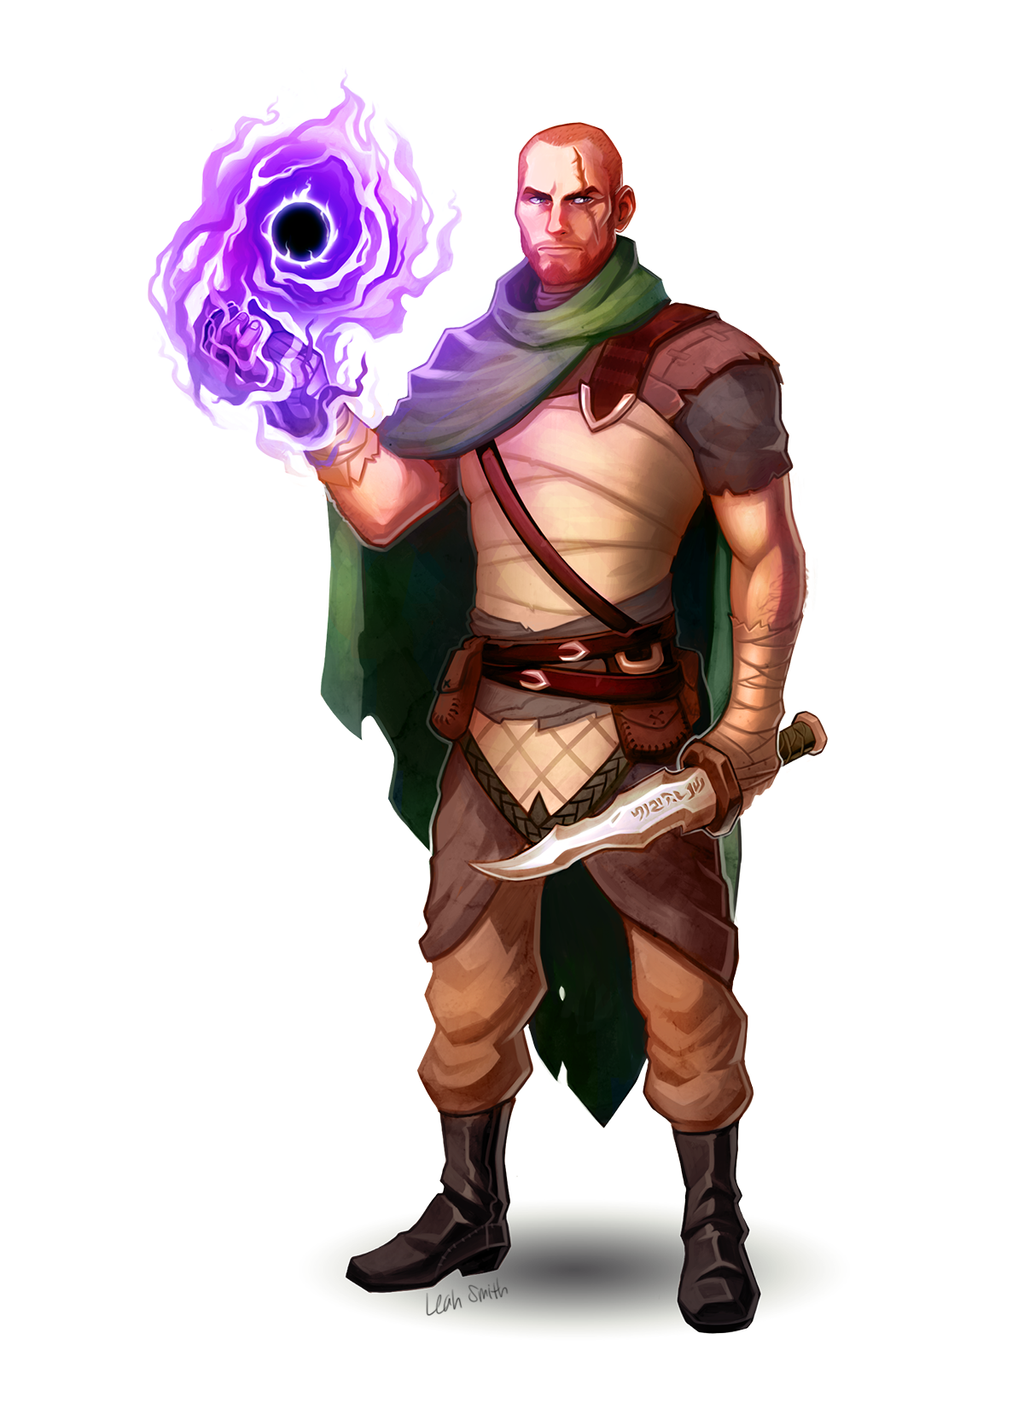 dungeons and dragons character commission by leahmsmith on deviantart